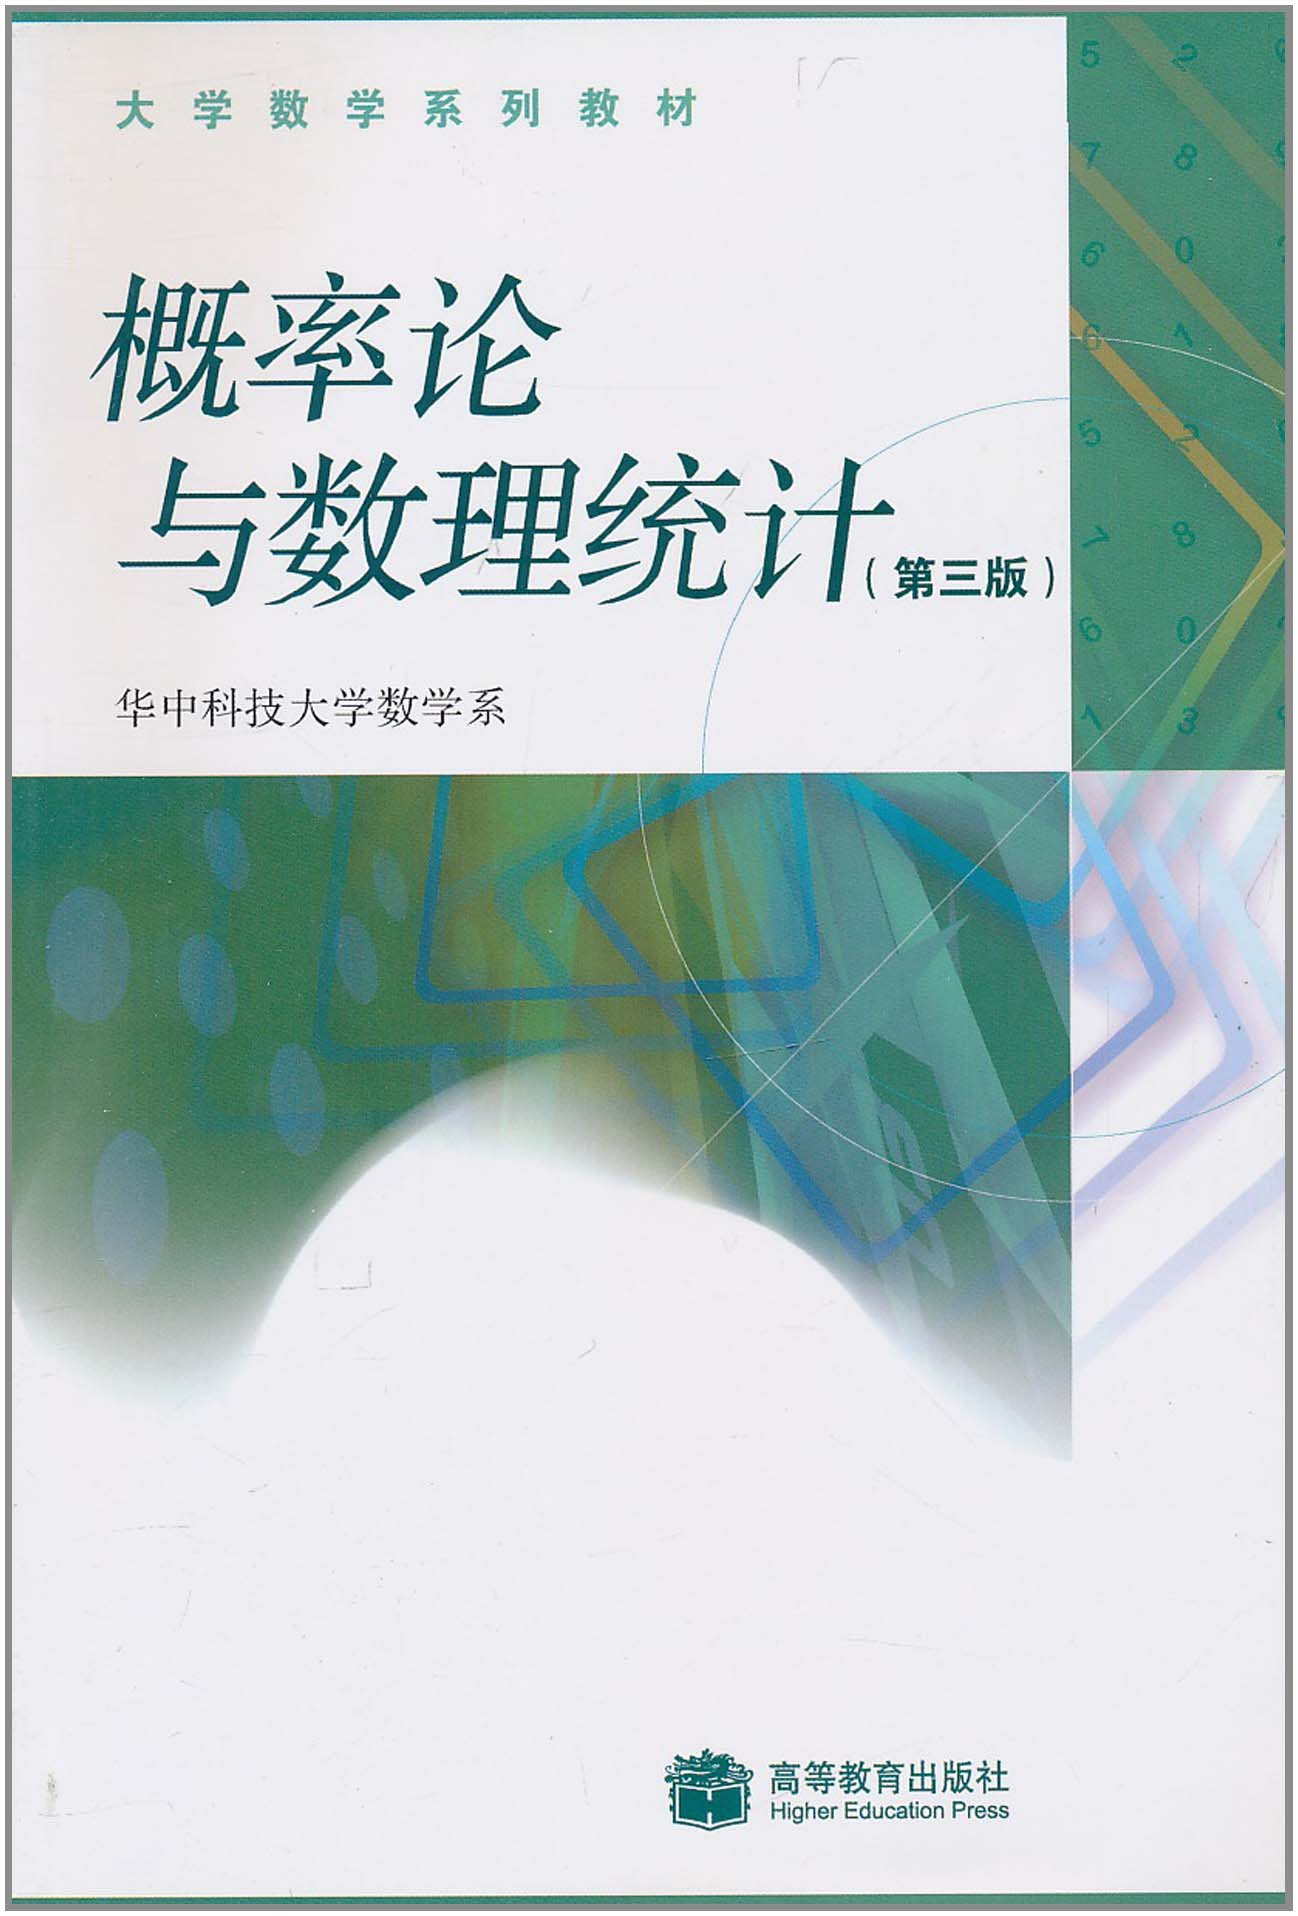 Genuine free shipping probability theory and mathematical statistics (university mathematics textbook series) huazhong university of science and technology department of mathematics liu times Tens of thousands of jianping china higher education press third edition version 3rd